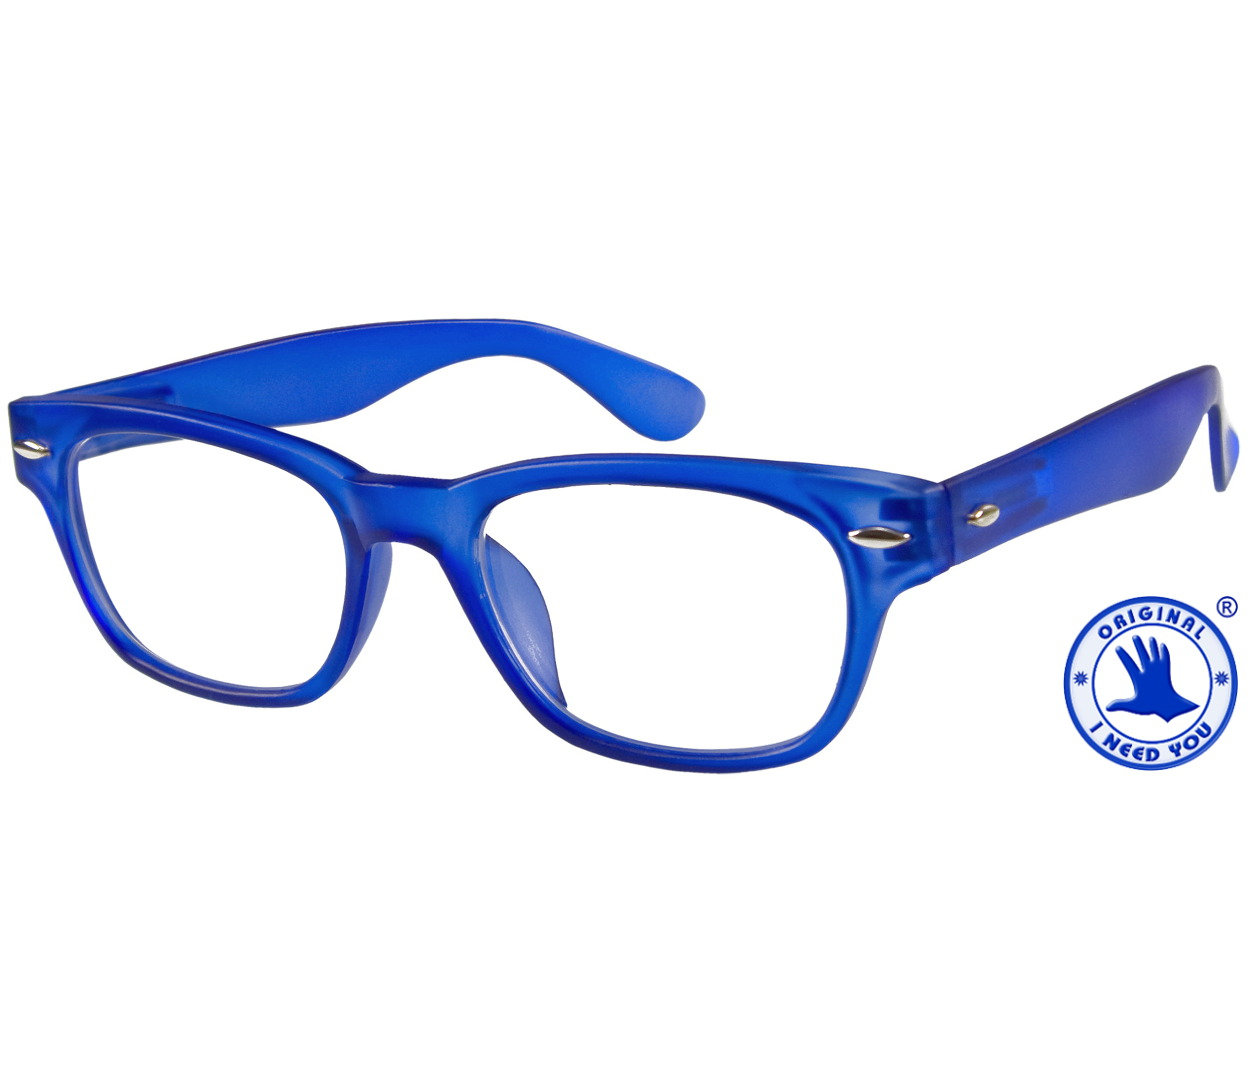 Main Image (Angle) - Woody (Blue) Reading Glasses